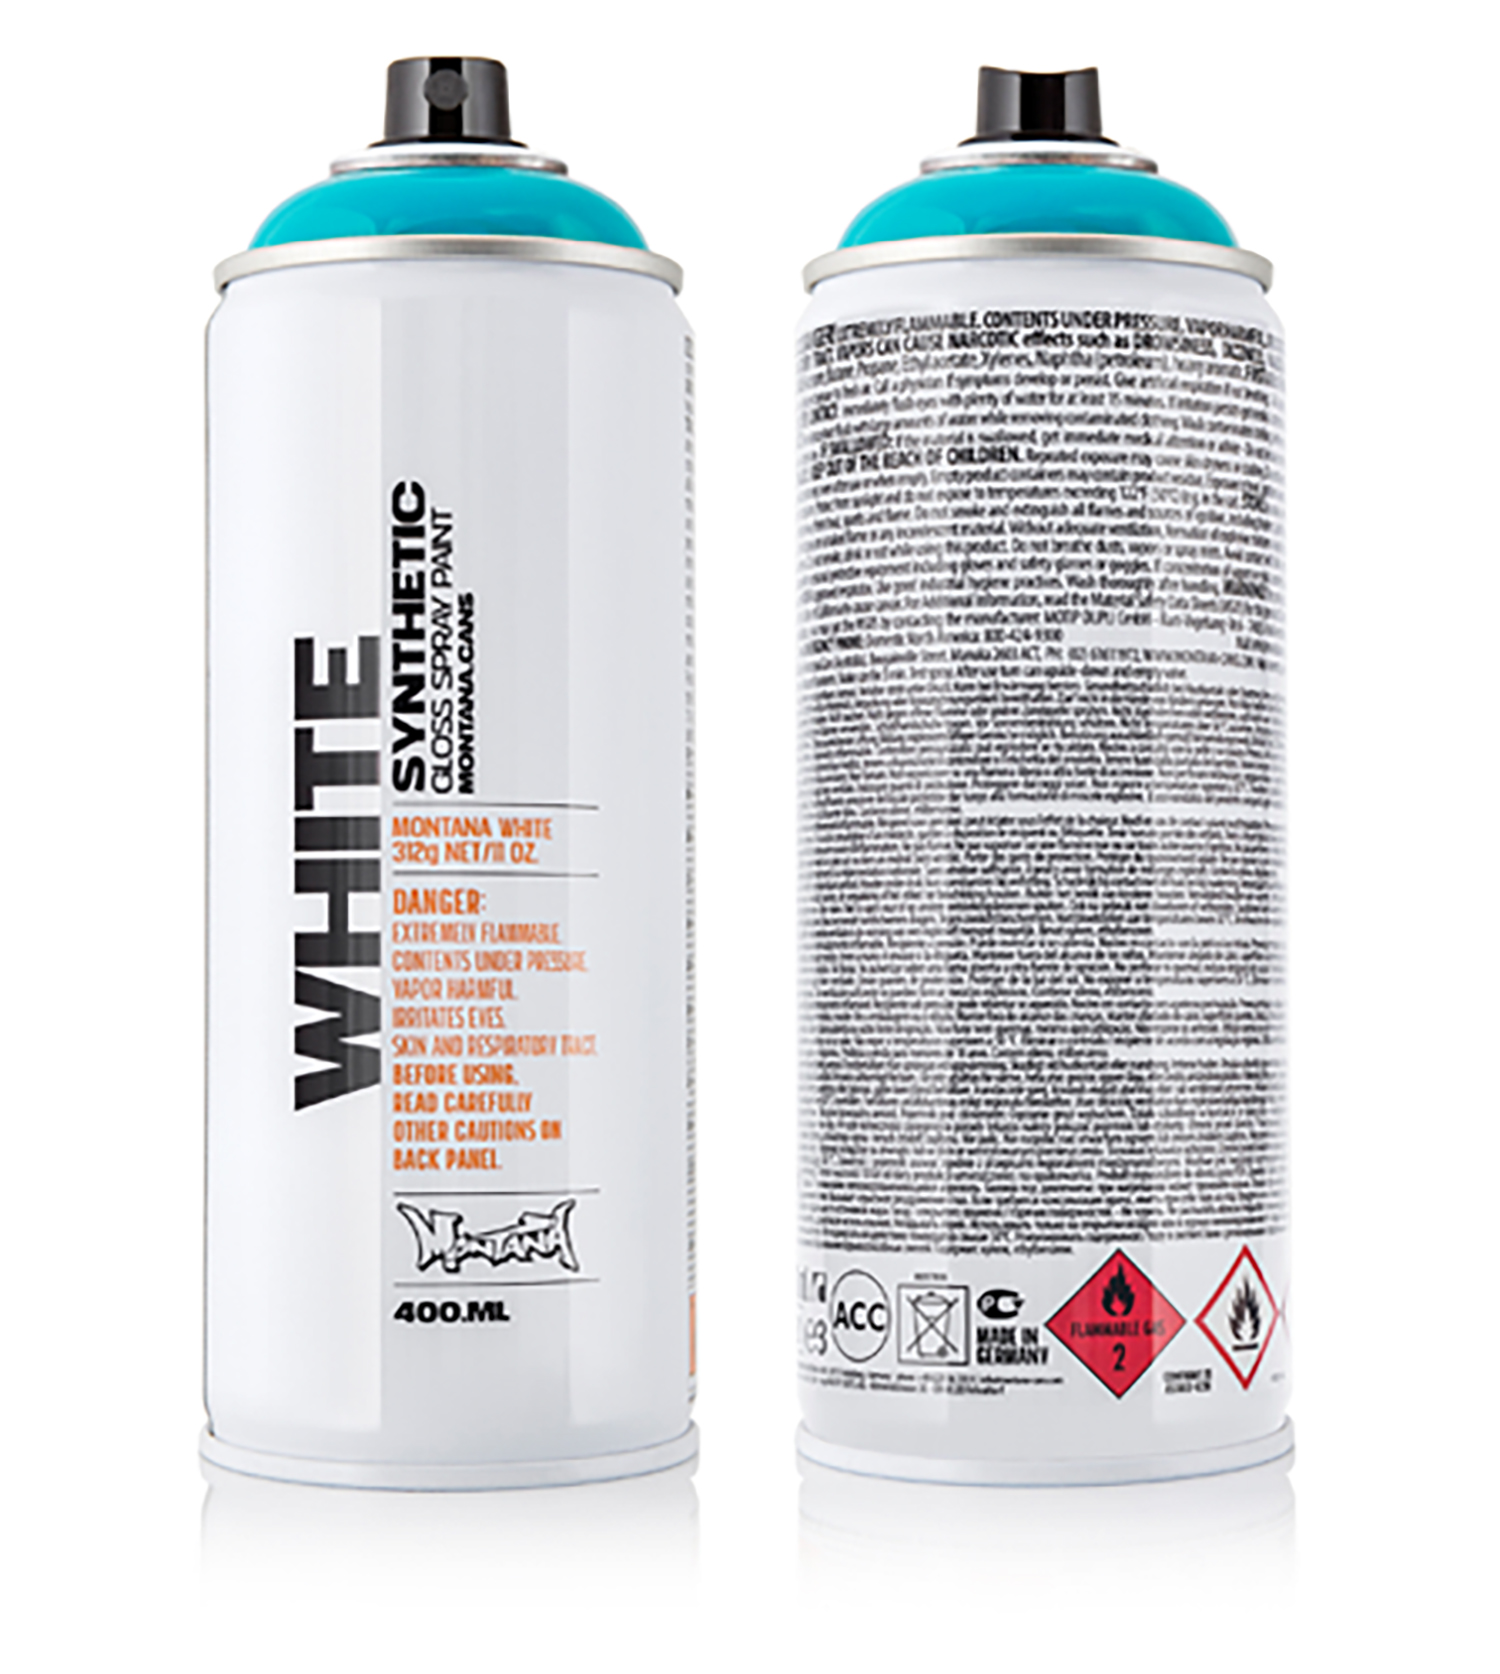 MONTANA-WHITE-SPRAY-400ML-5030